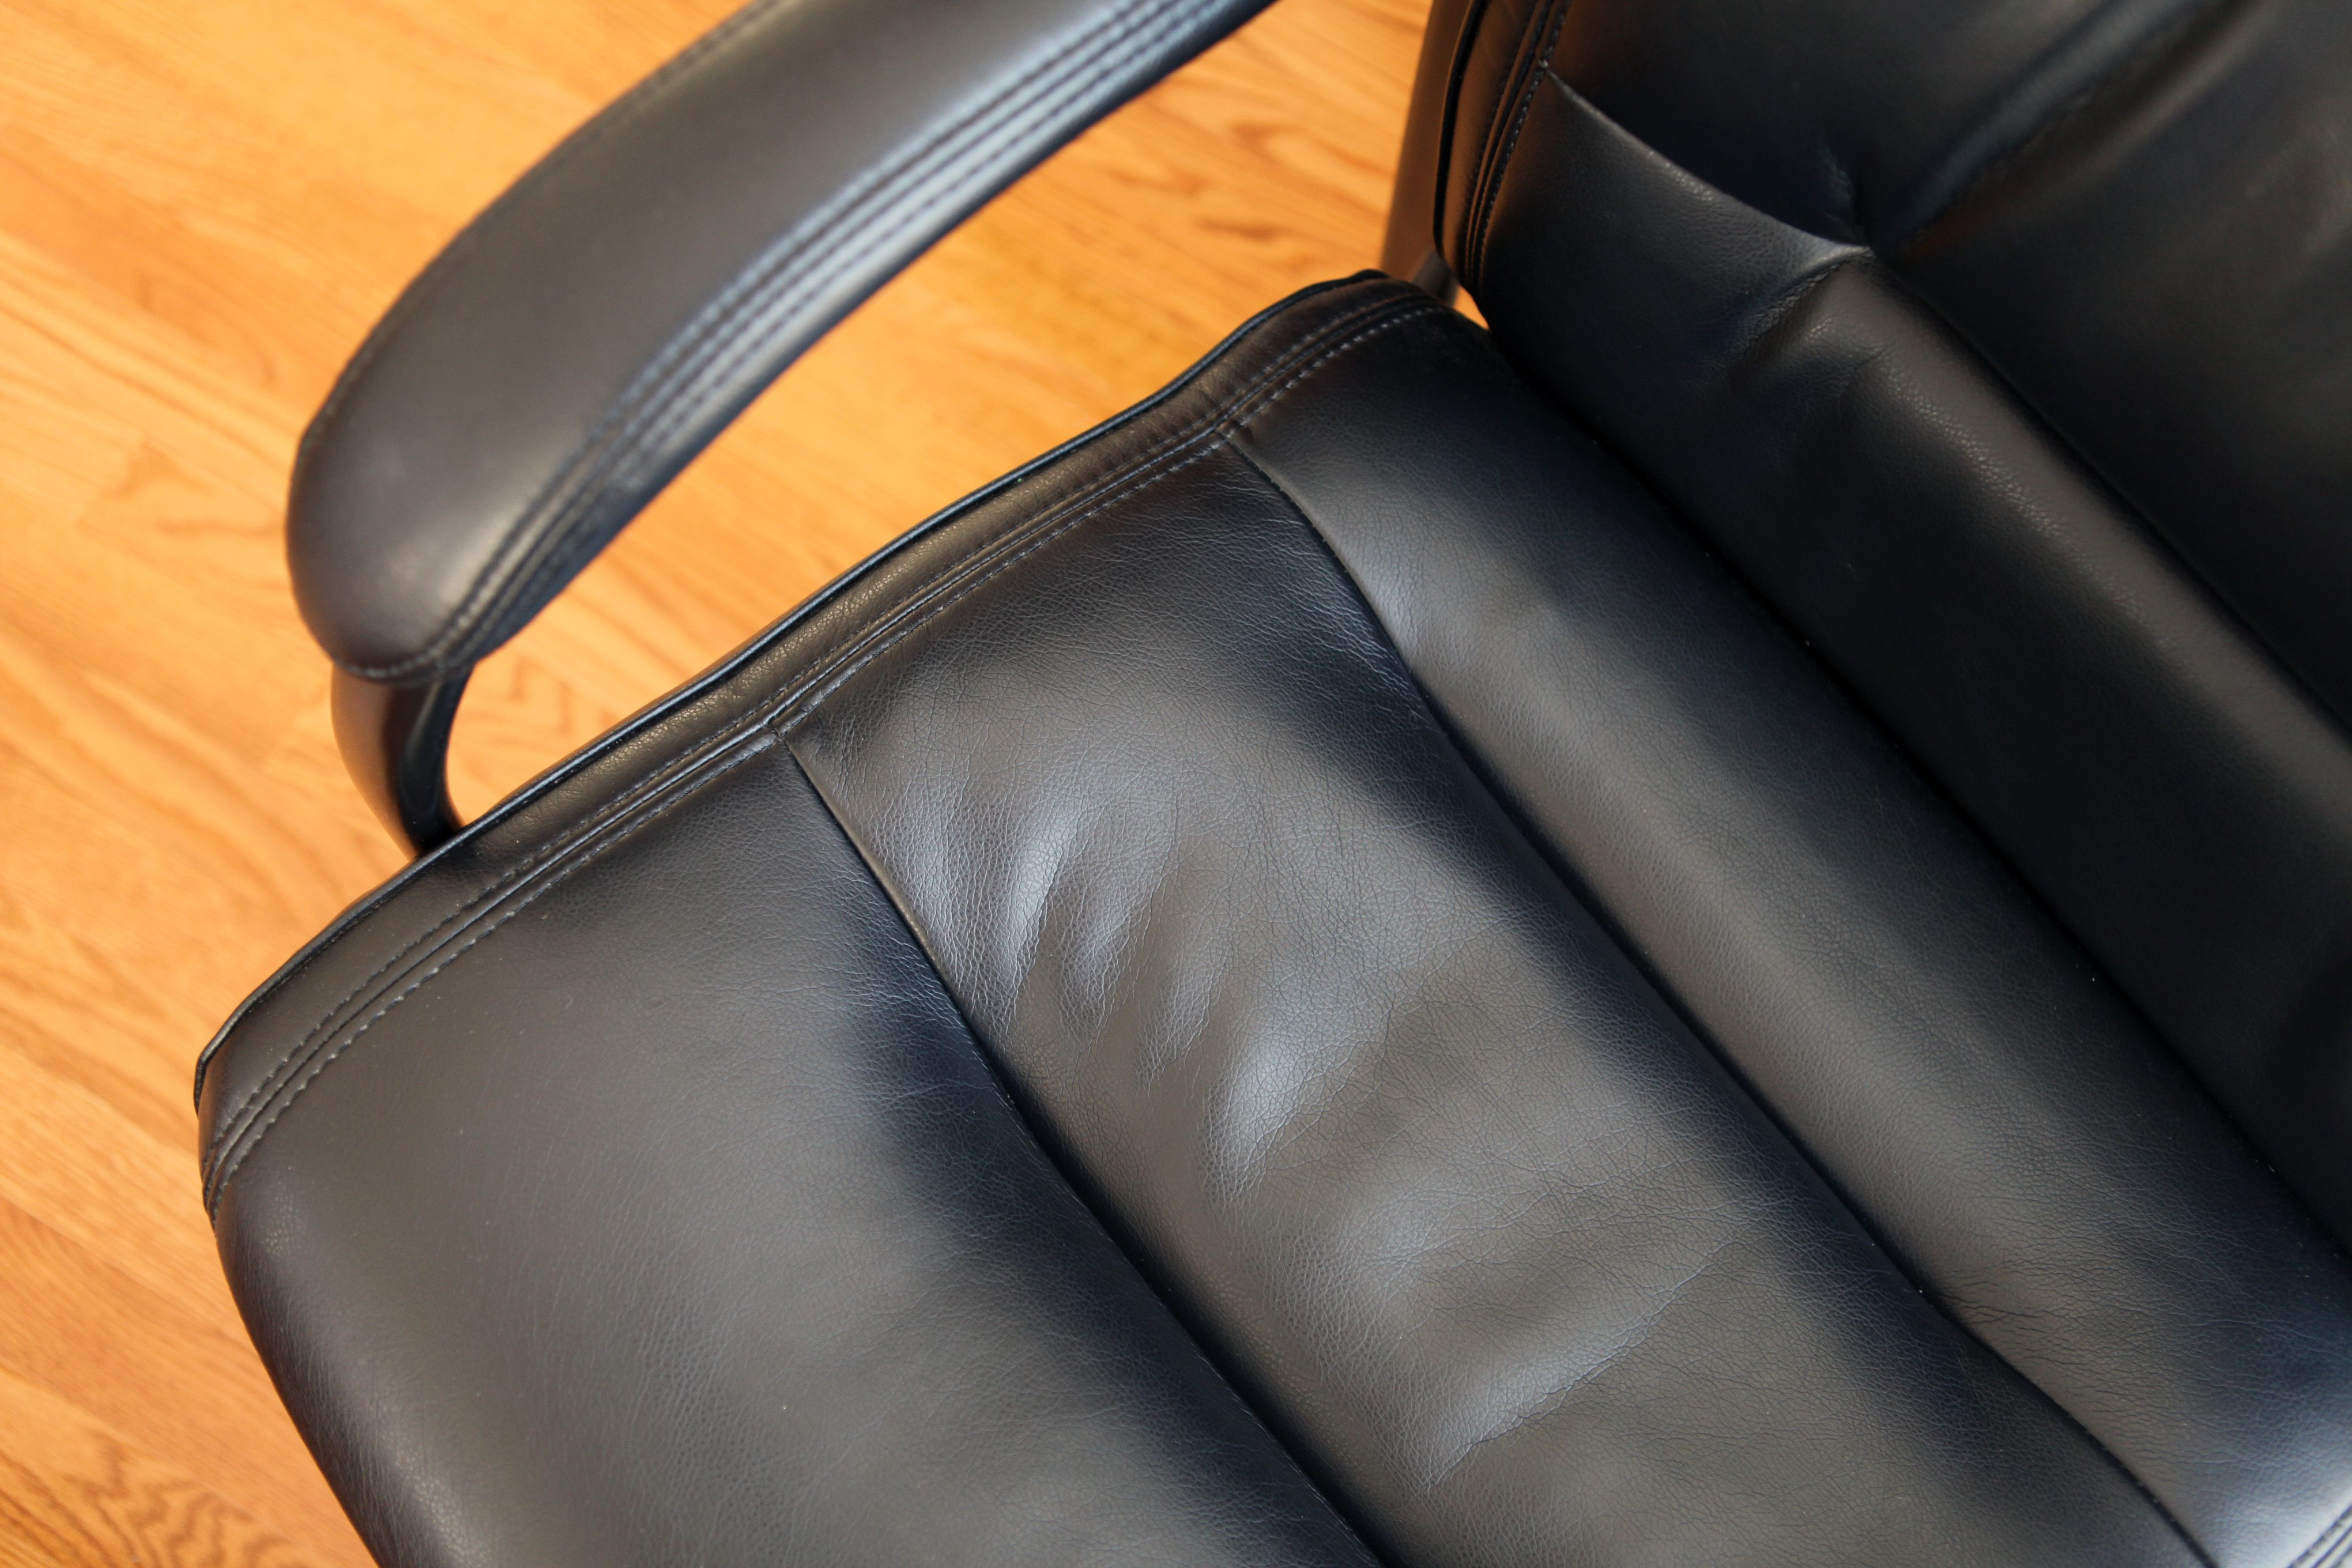 How to Use Shoe Polish on Leather Furniture Diy leather